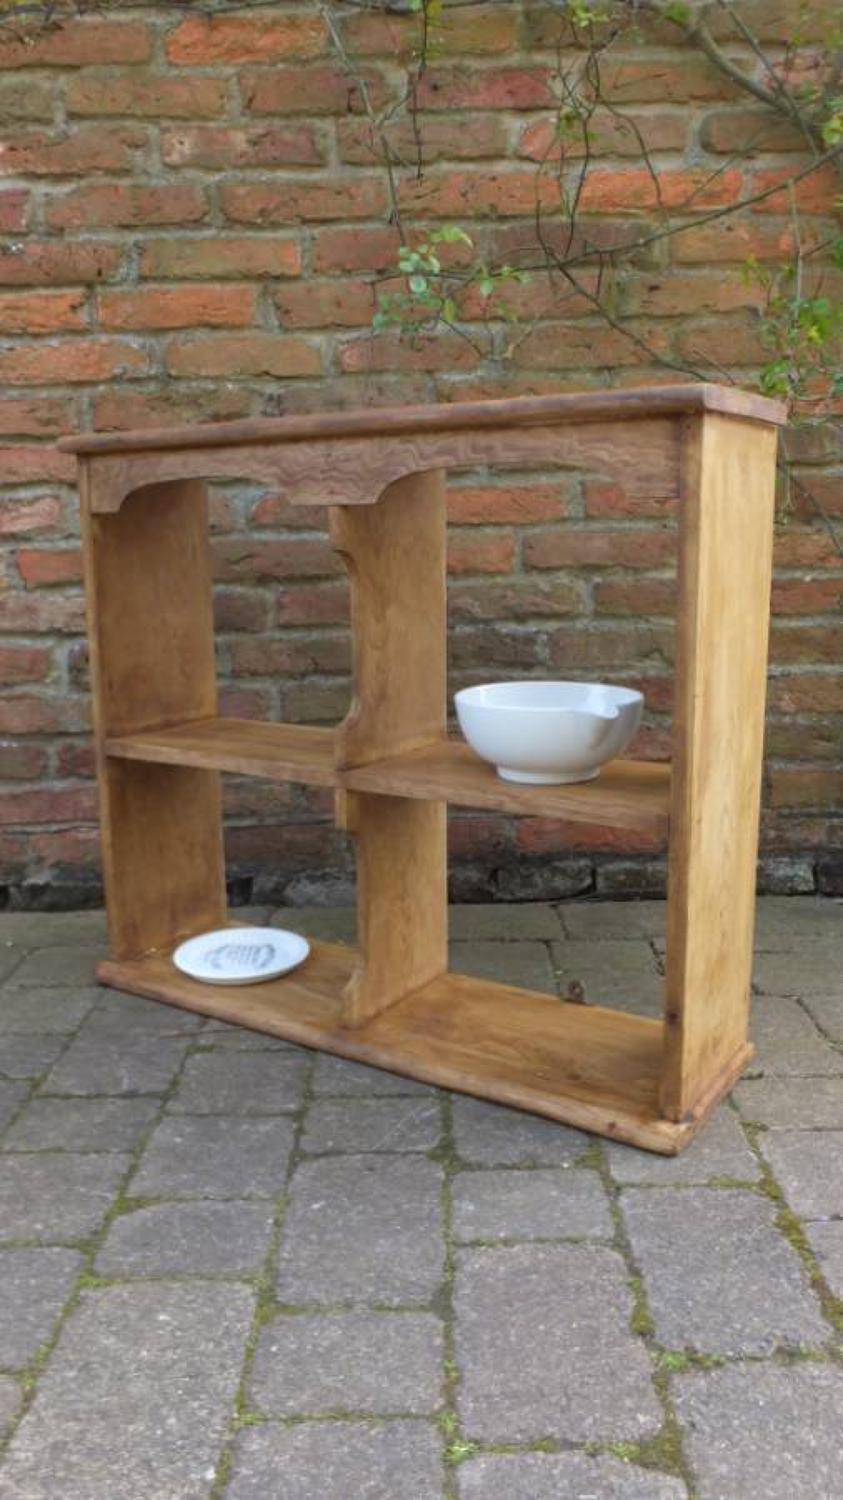 Victorian Pine Set of Four Pigeon Hole Shelves with Arched Top & Middl